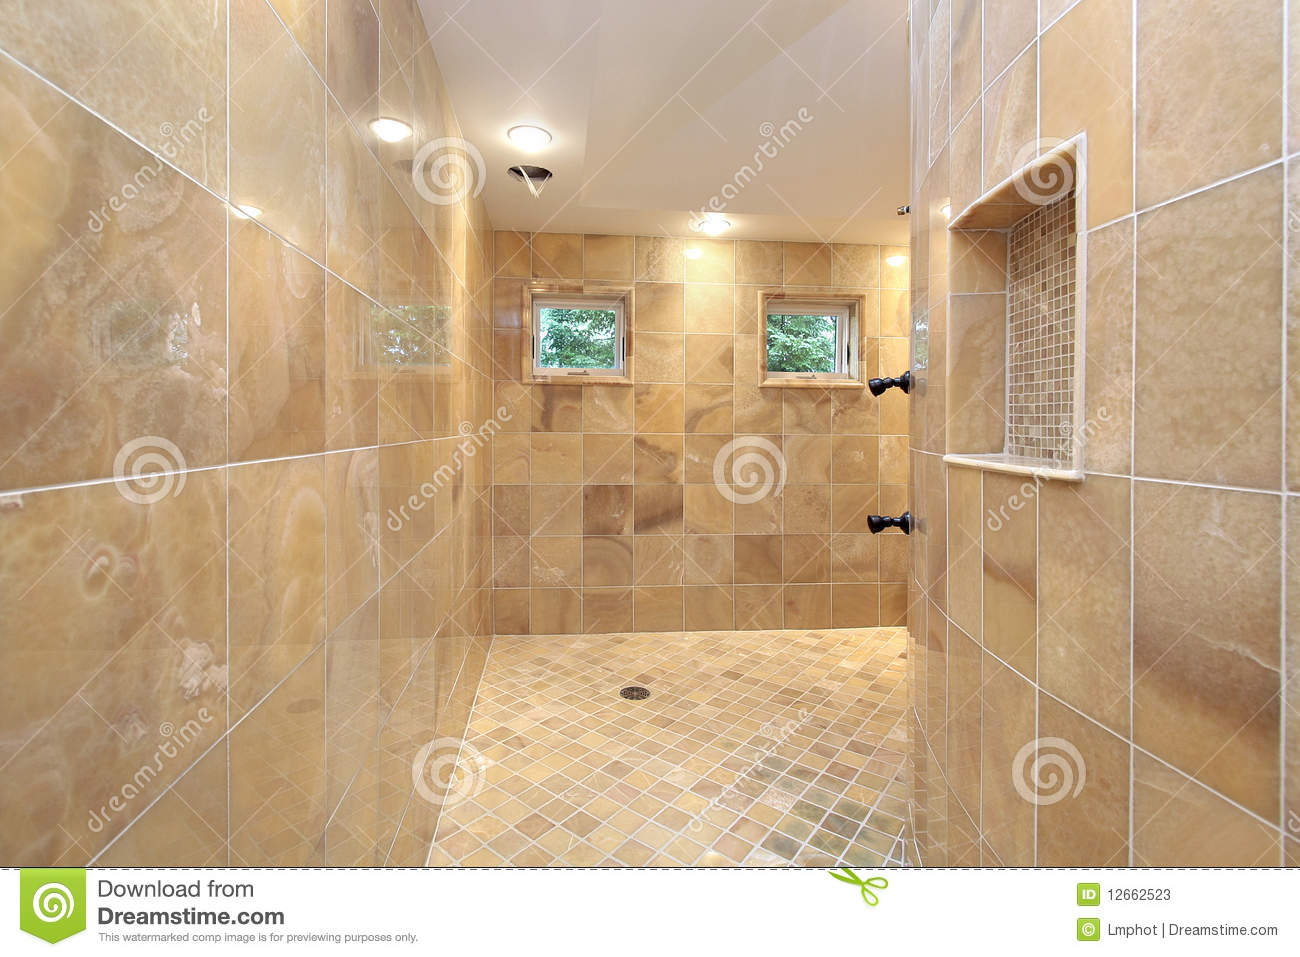 luxury stone showers - Luxury Stone Showers